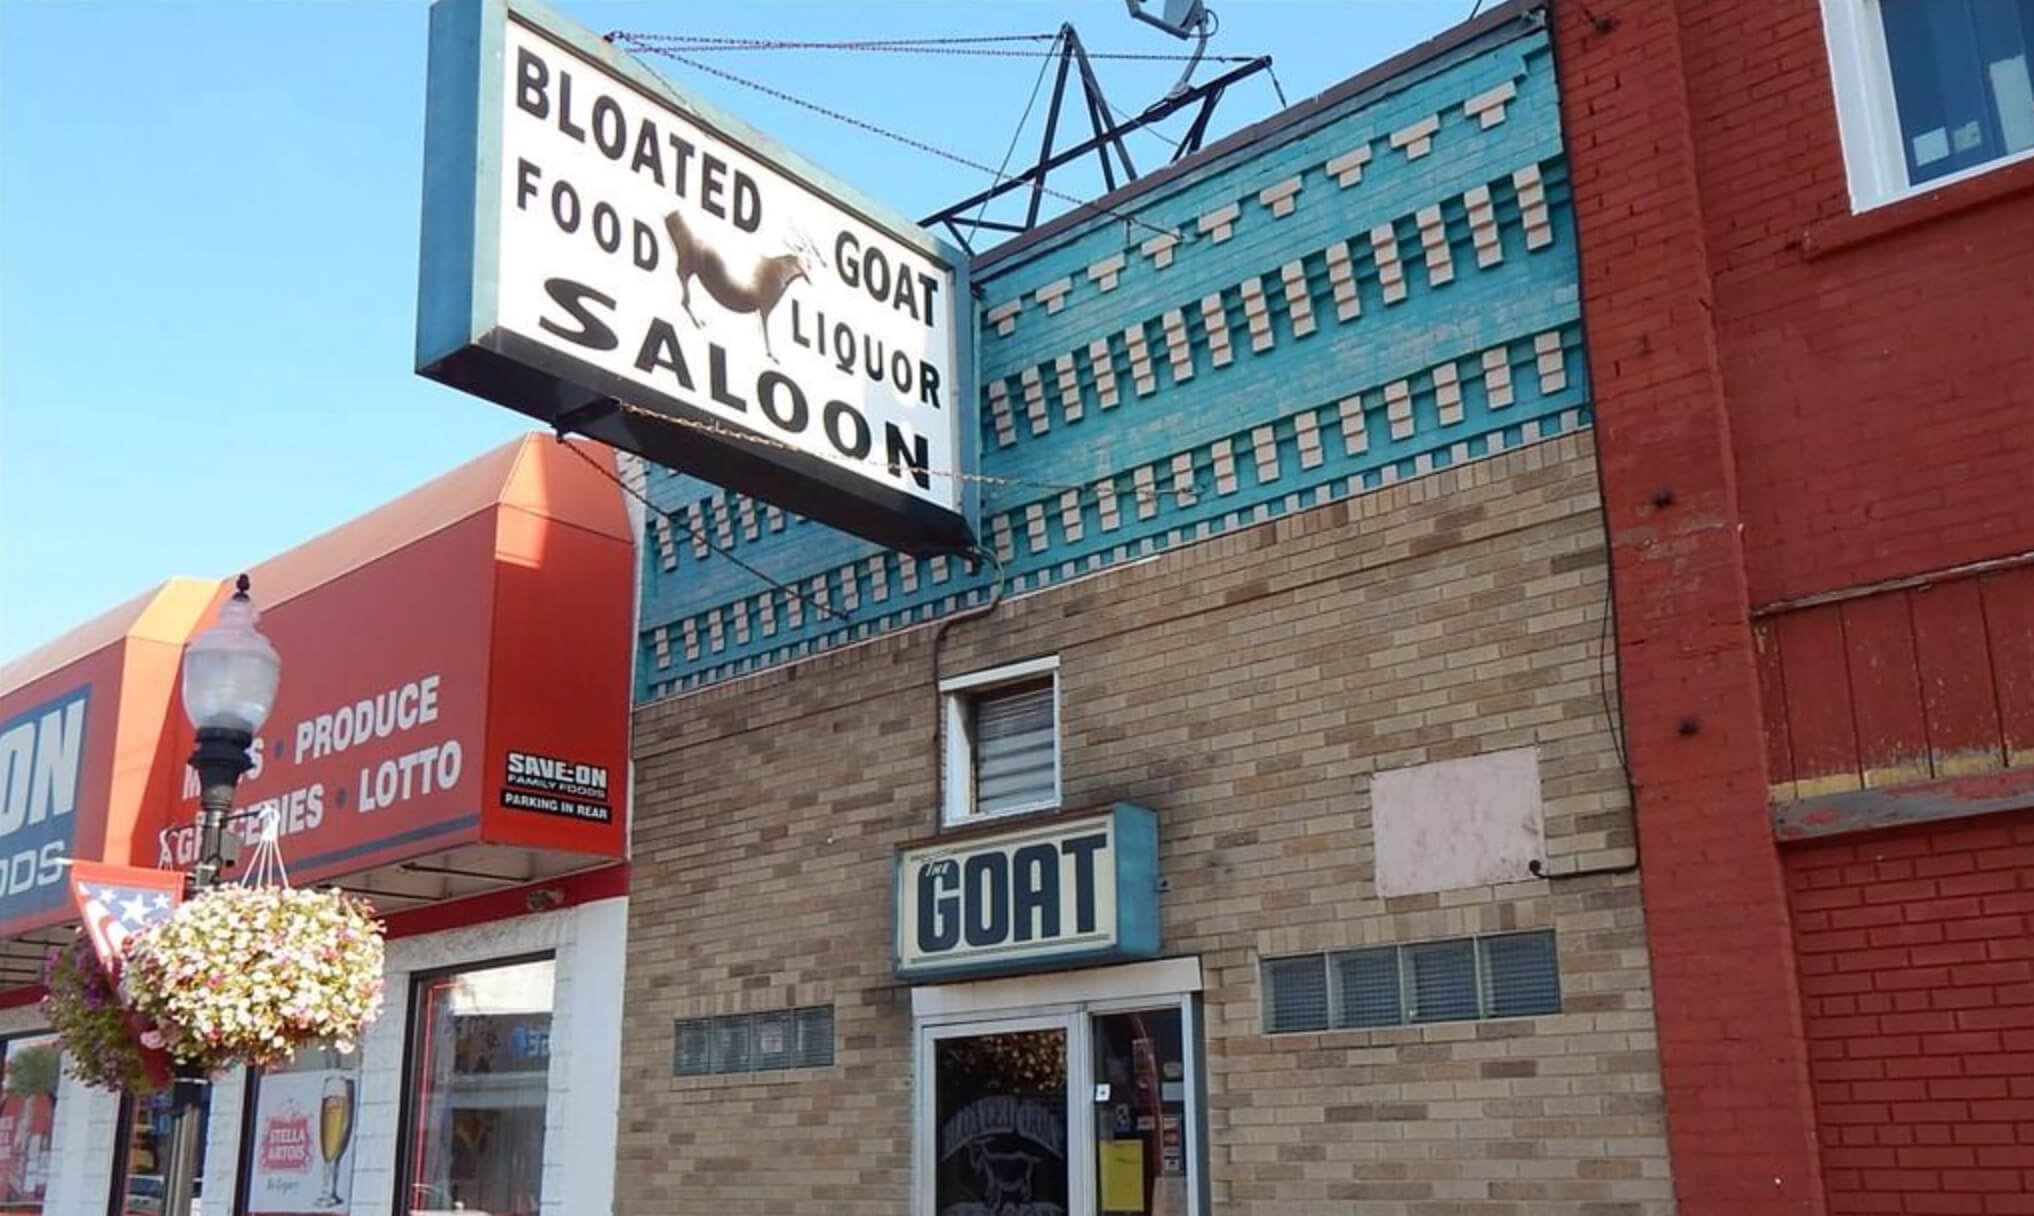 fowlerville u0027s iconic bloated goat saloon is up for sale here u0027s